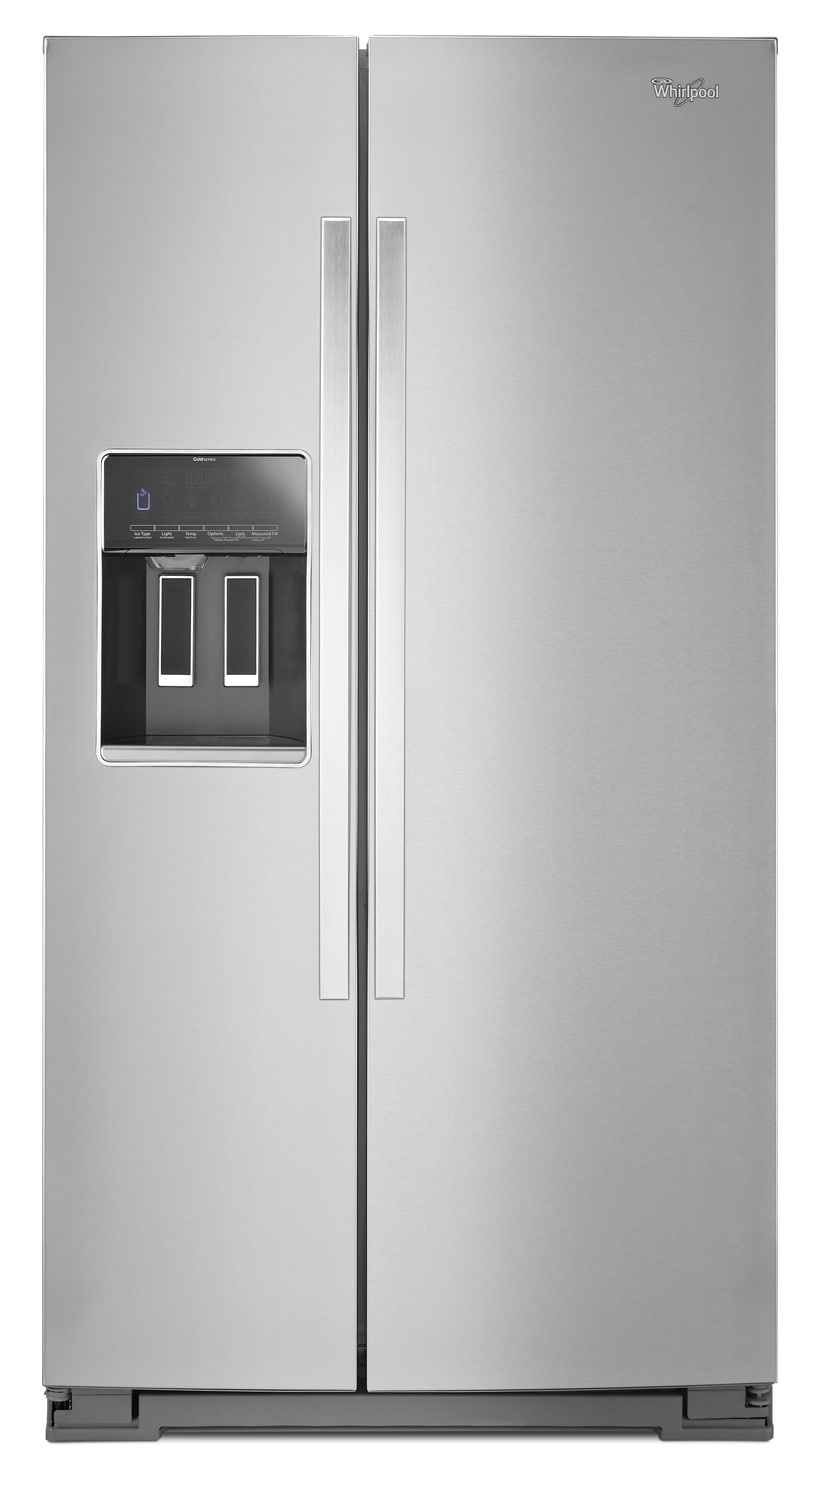 Refrigerators and Freezers - Whirlpool Stainless Steel Side-by-Side Refrigerator (25.6 Cu. Ft.) - WRS586FIEM